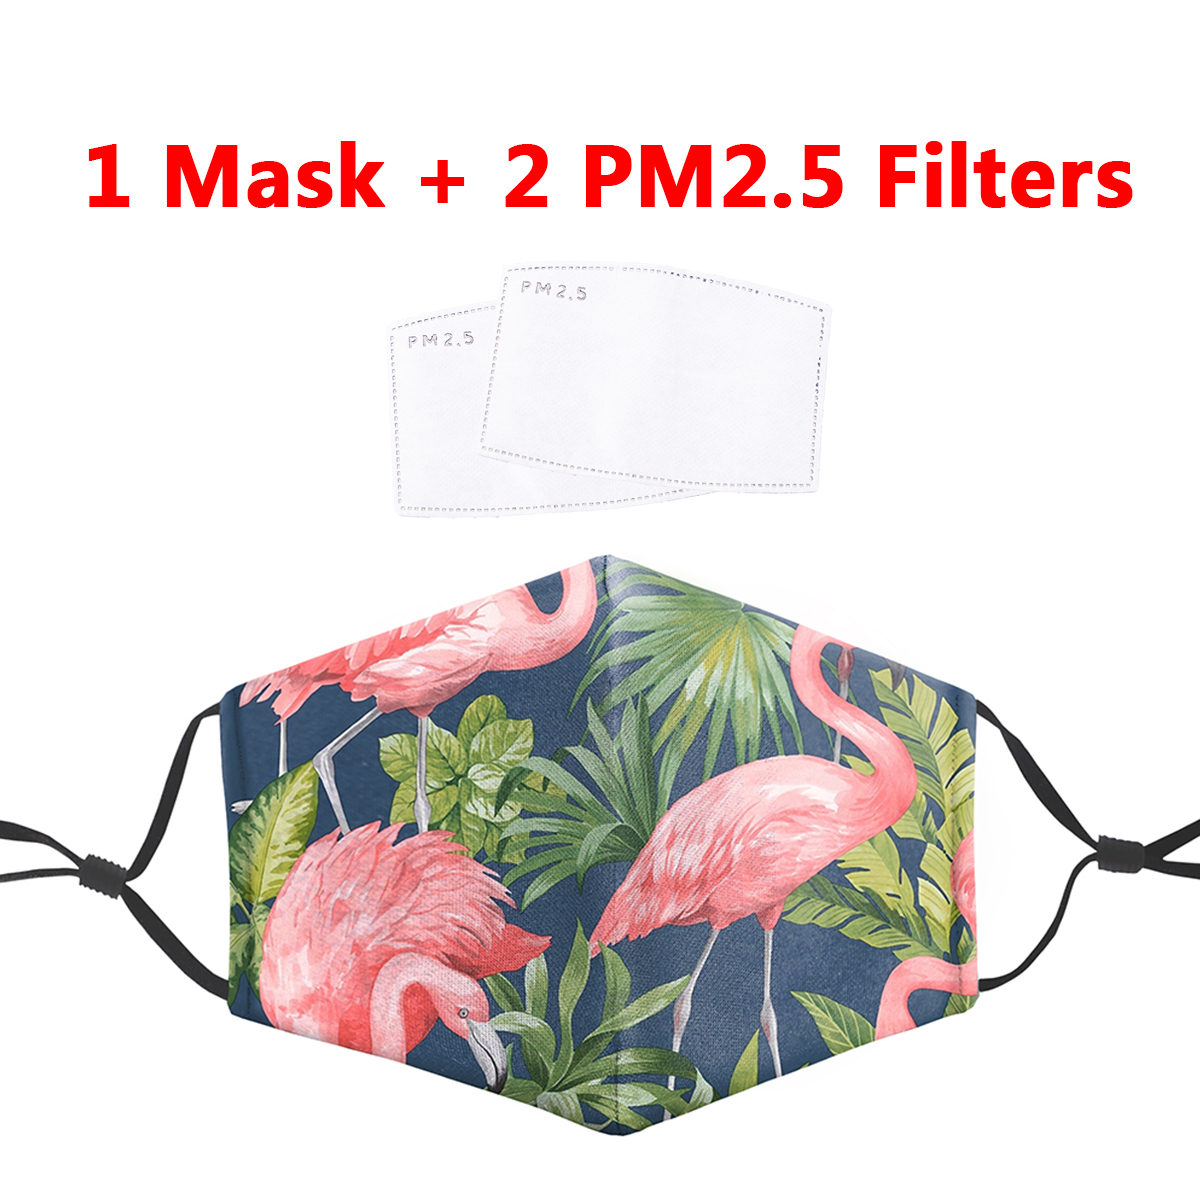 Flamingo Animal Face Mask Printing Mouth Masks Reusable Protective PM 2.5 Filter Anti Dust Face Mask Proof Flu Mask Dropshipping